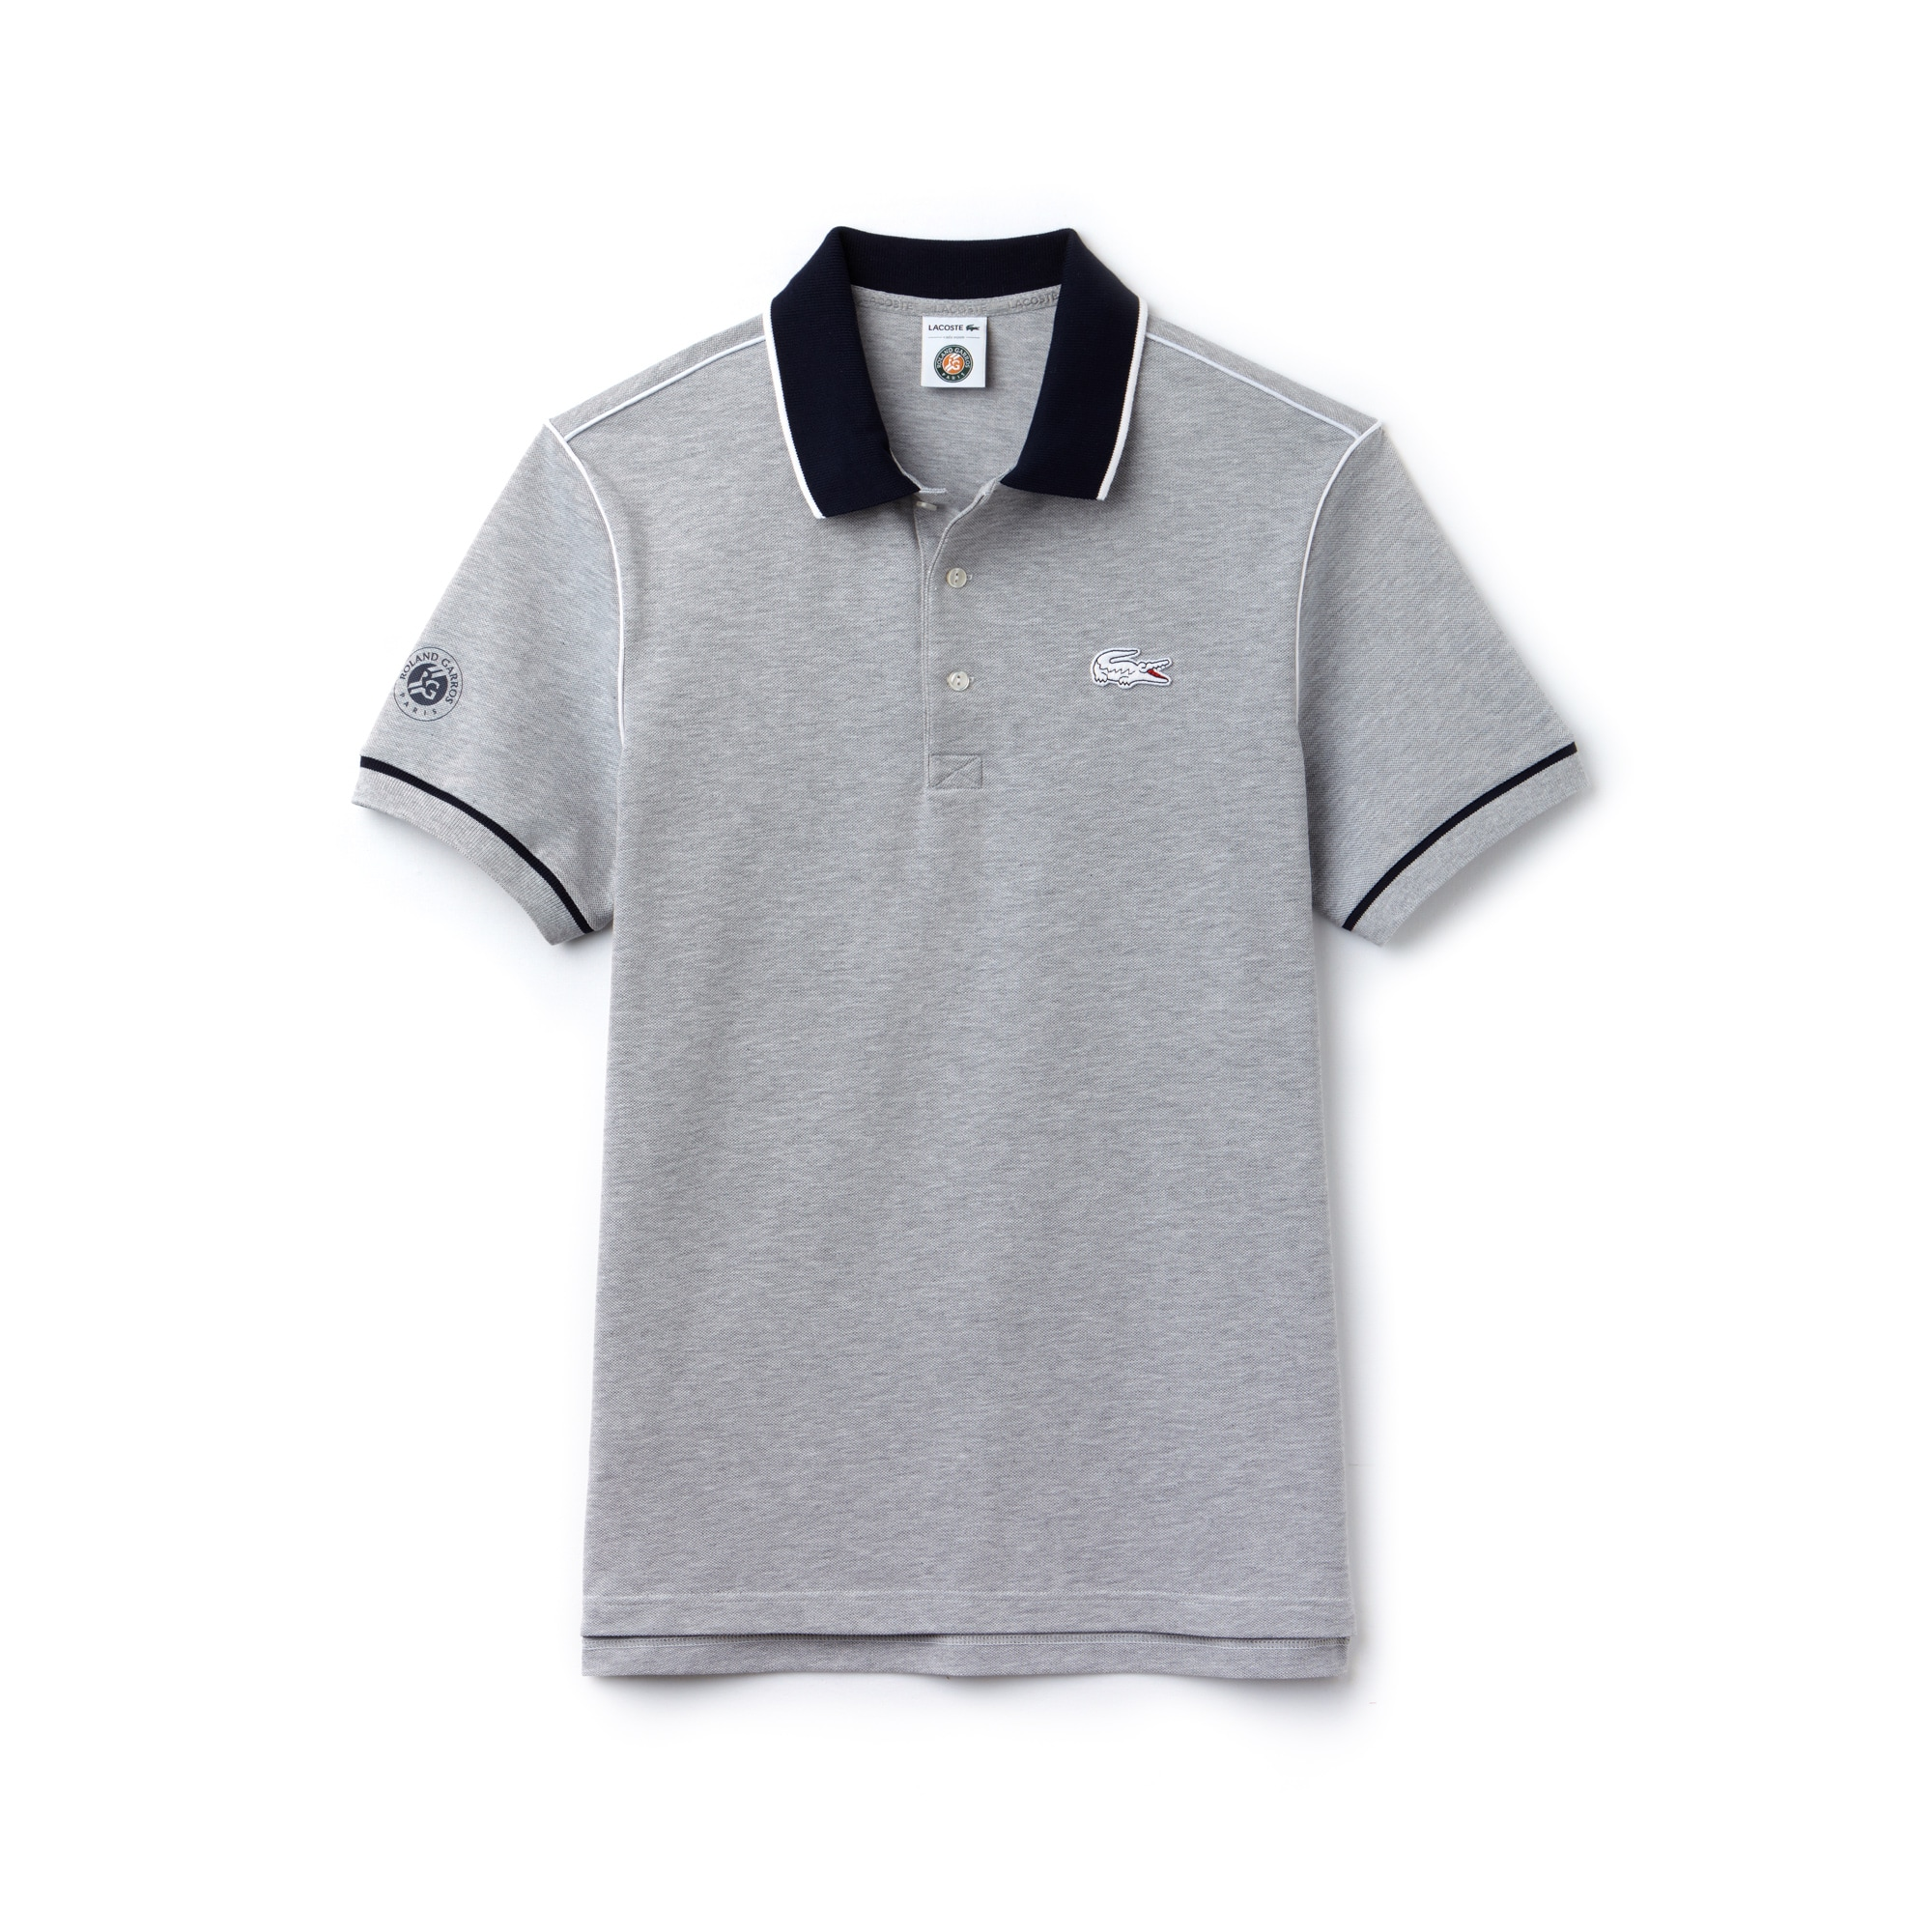 Men's Lacoste SPORT Roland Garros Edition Piped Piqué Polo Shirt